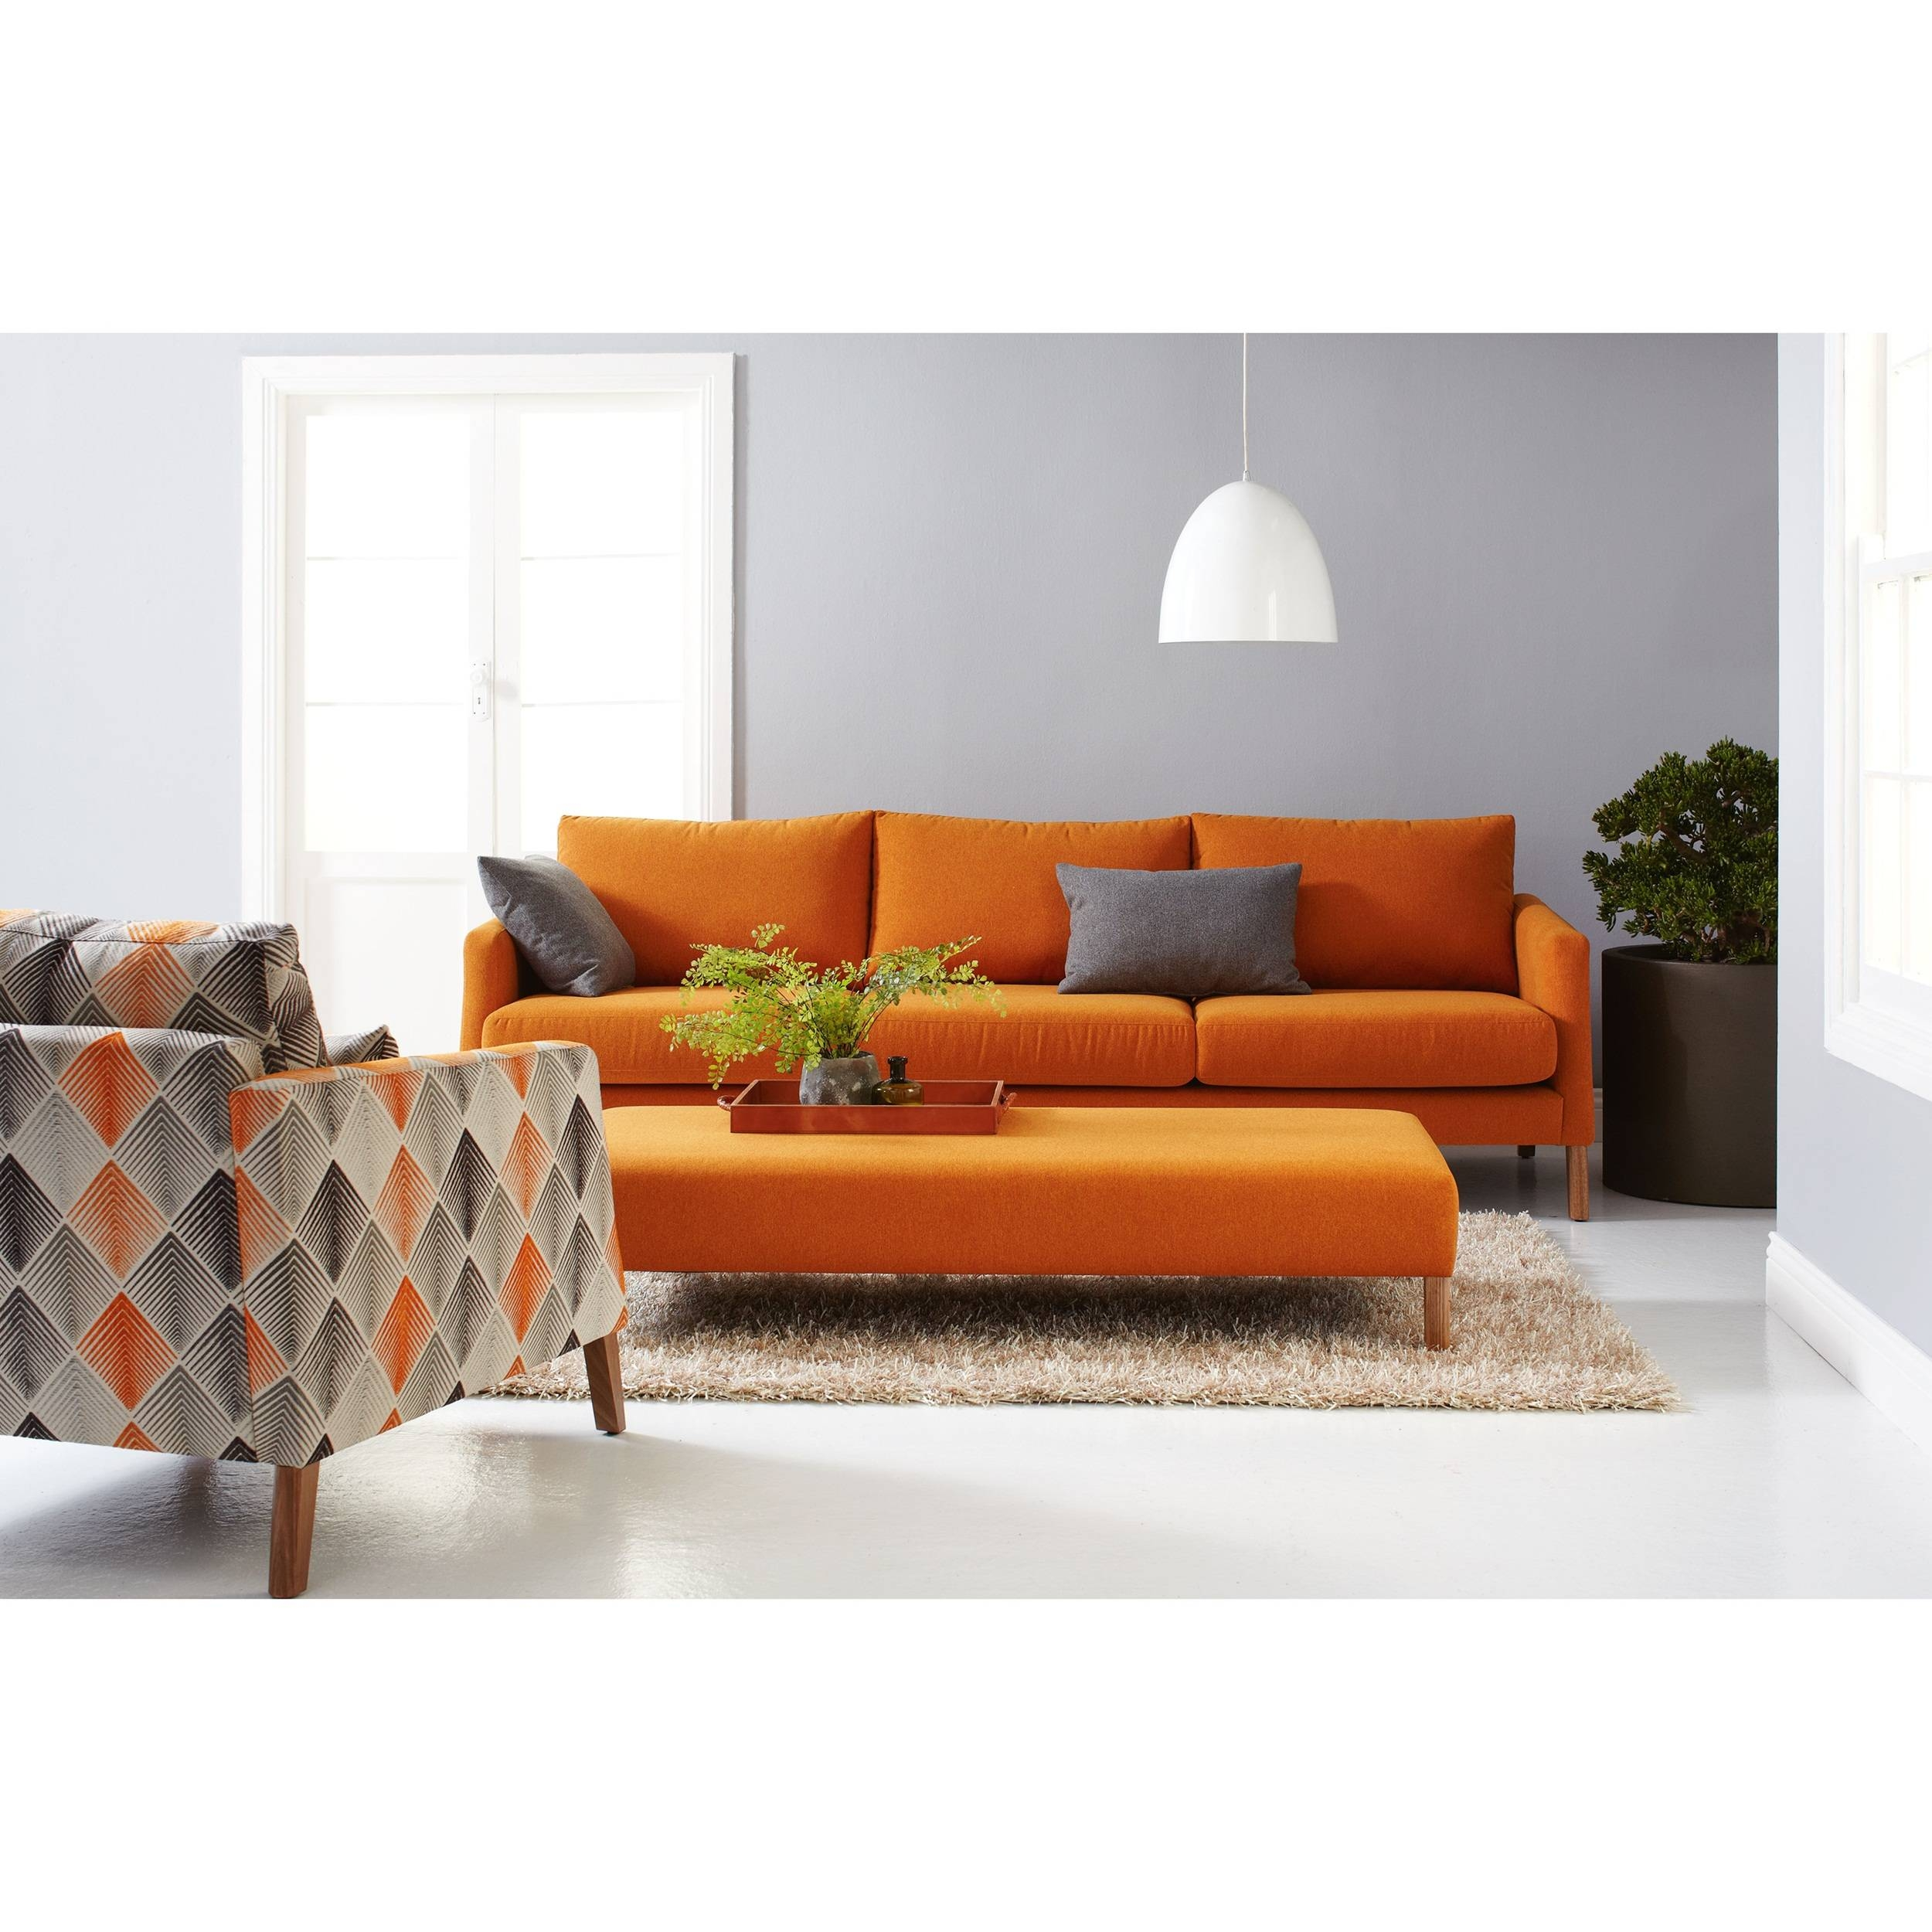 Living Room: Orange Living Room Furniture Photo. Grey And Orange with regard to Orange Sofa Chairs (Image 7 of 15)